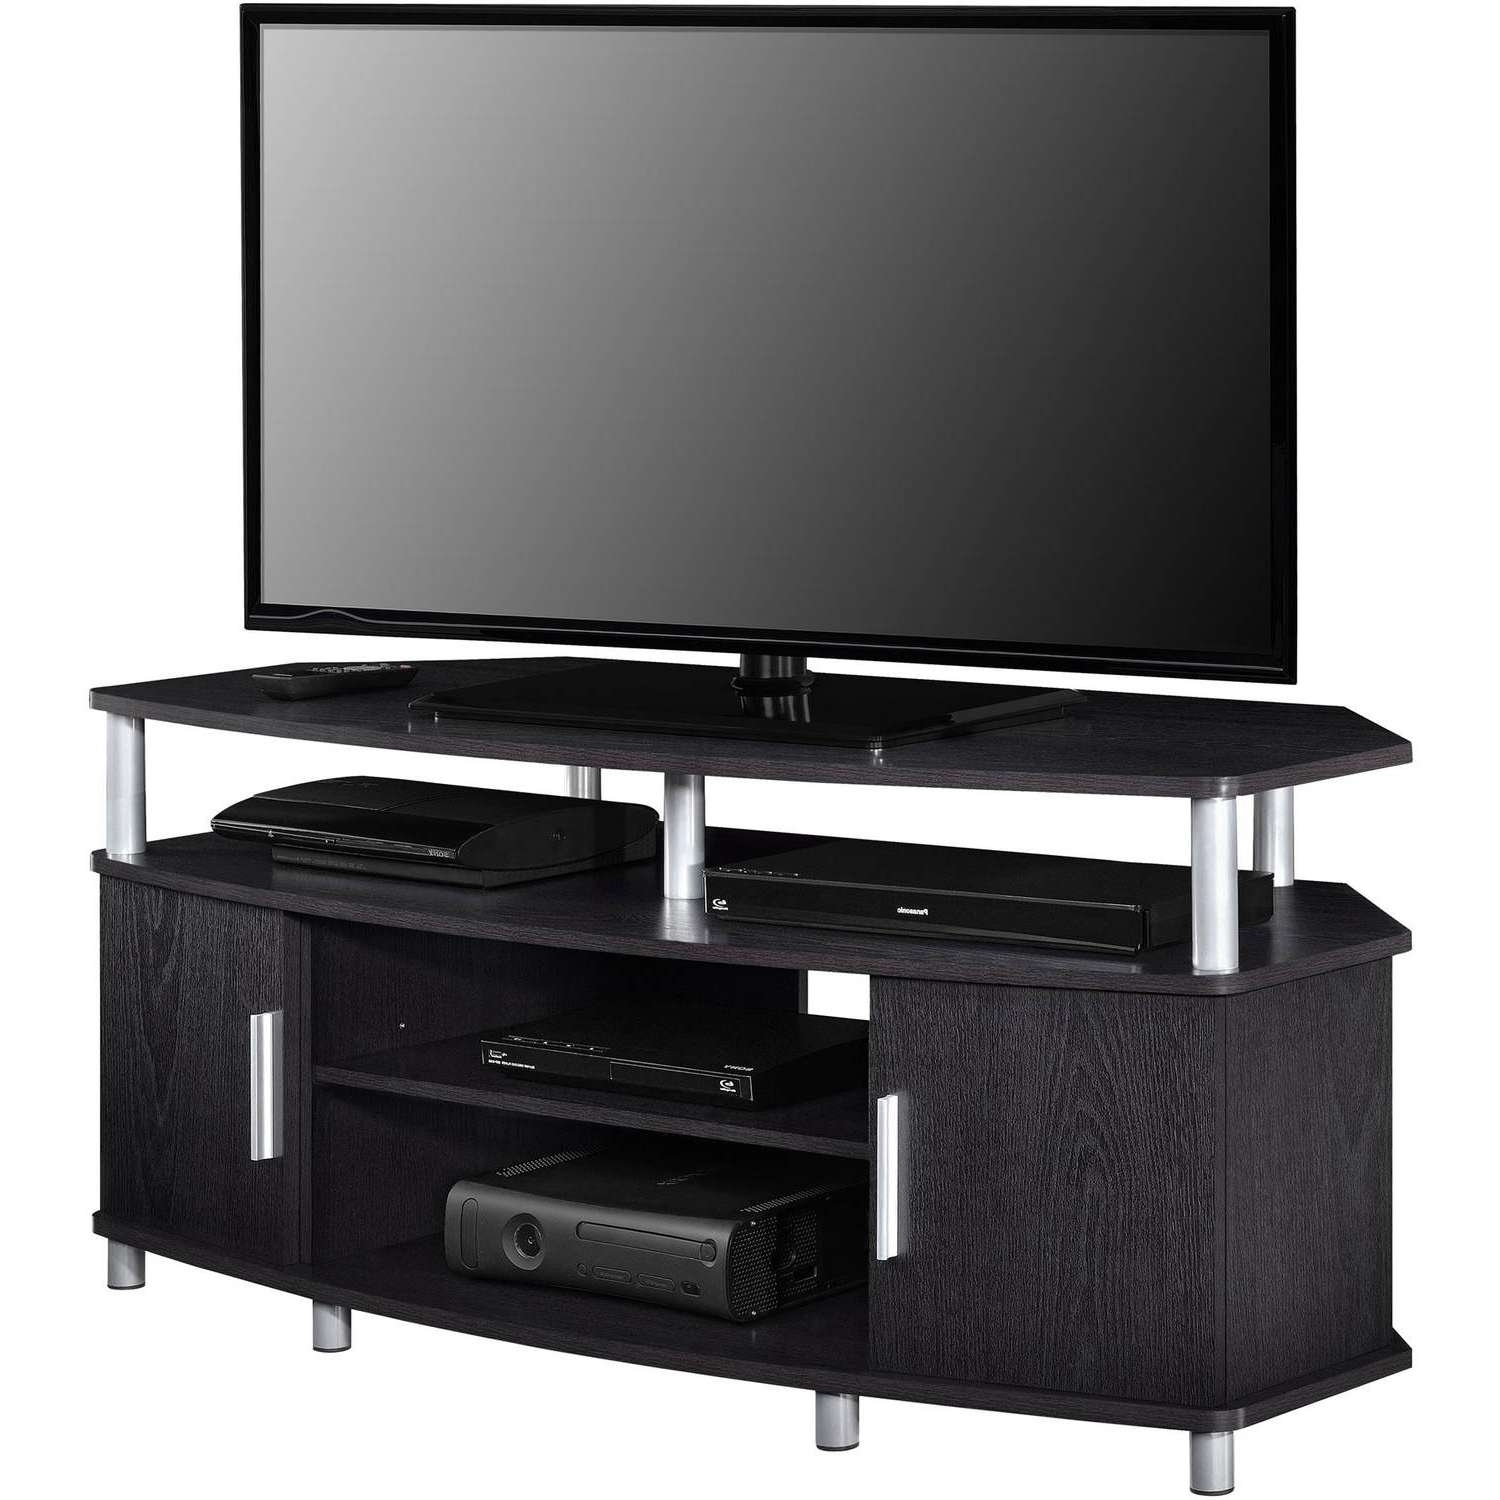 "Ameriwood Home Carson Corner Tv Stand For Tvs Up To 50"" Wide Intended For 50 Inch Corner Tv Cabinets (View 5 of 20)"